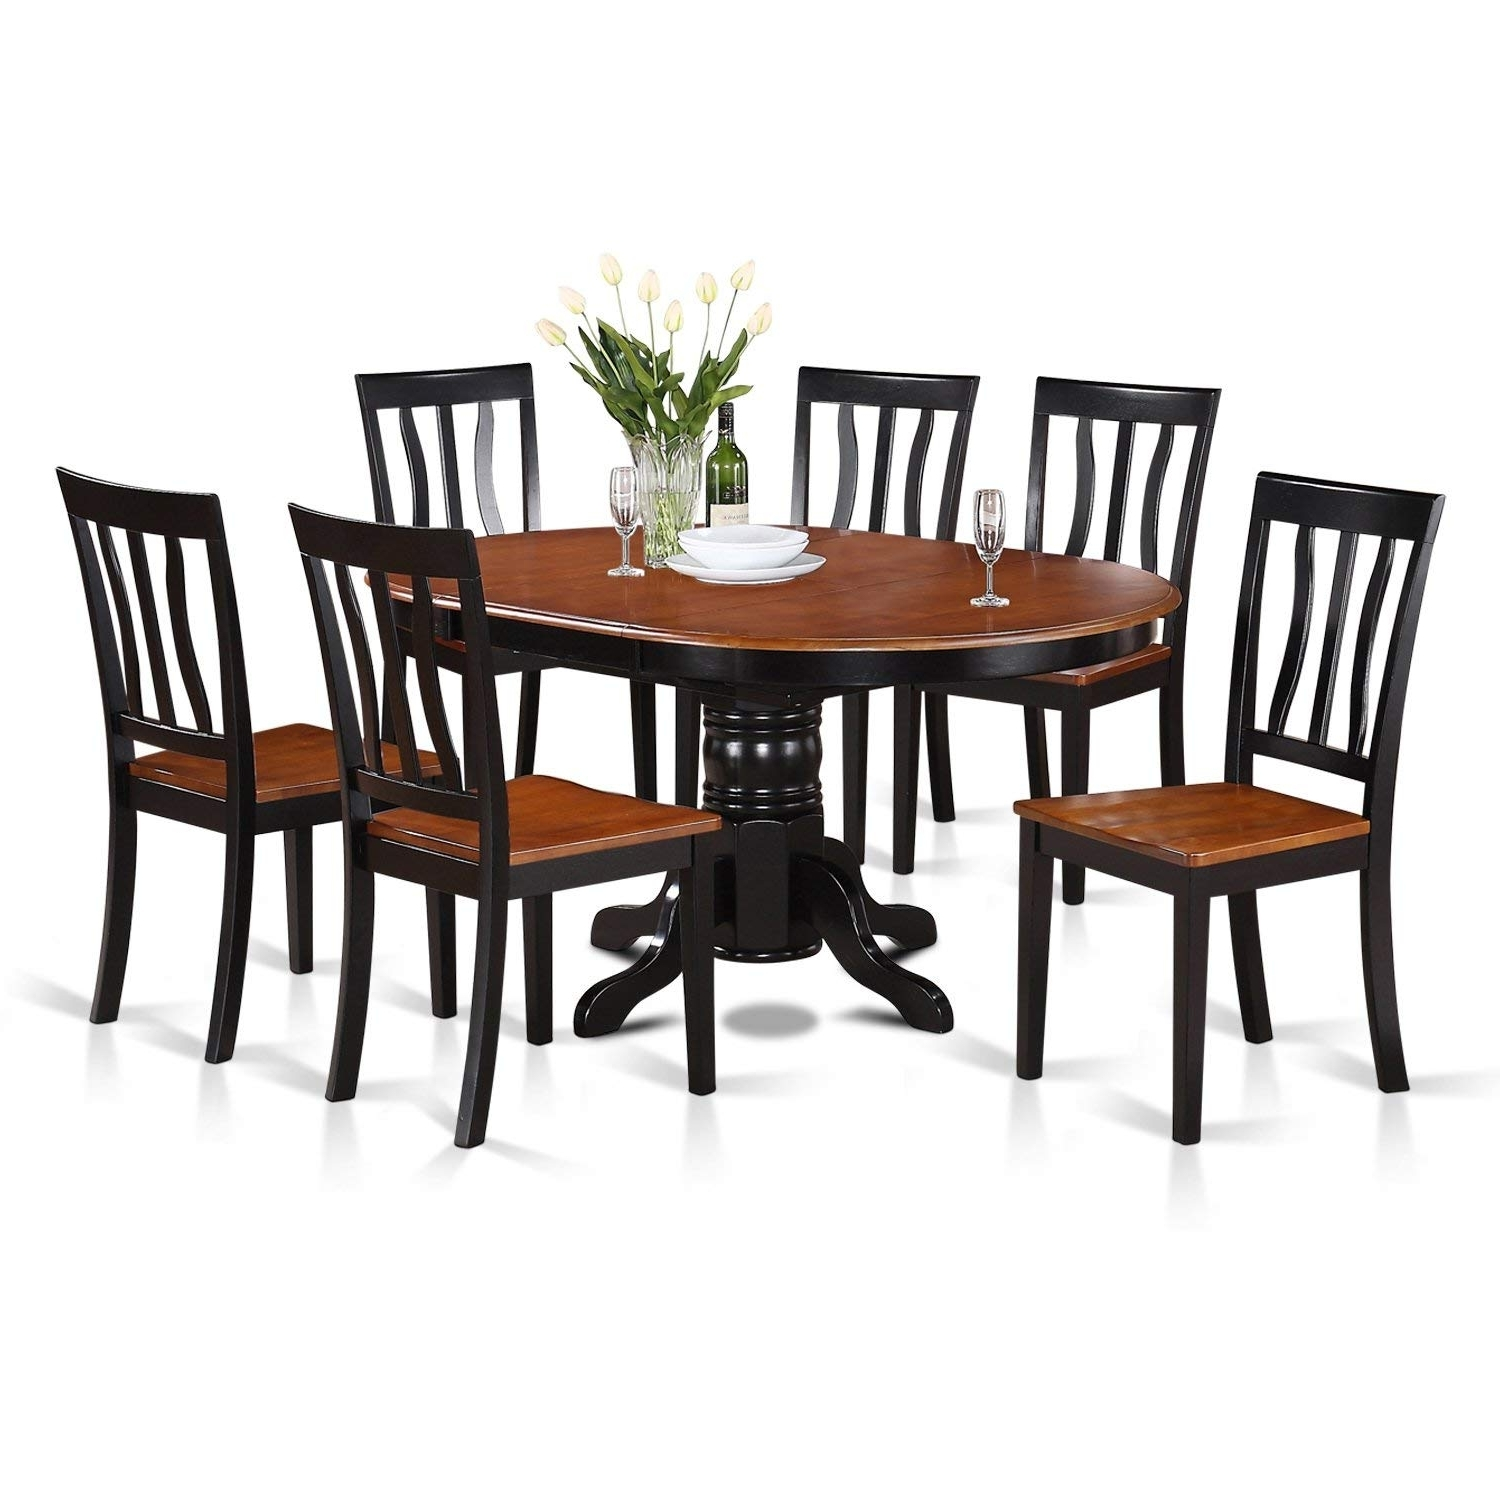 Jaxon Grey 6 Piece Rectangle Extension Dining Sets With Bench & Uph Chairs For 2017 Amazon: East West Furniture Avat7 Blk W 7 Piece Dining Table Set (View 6 of 25)